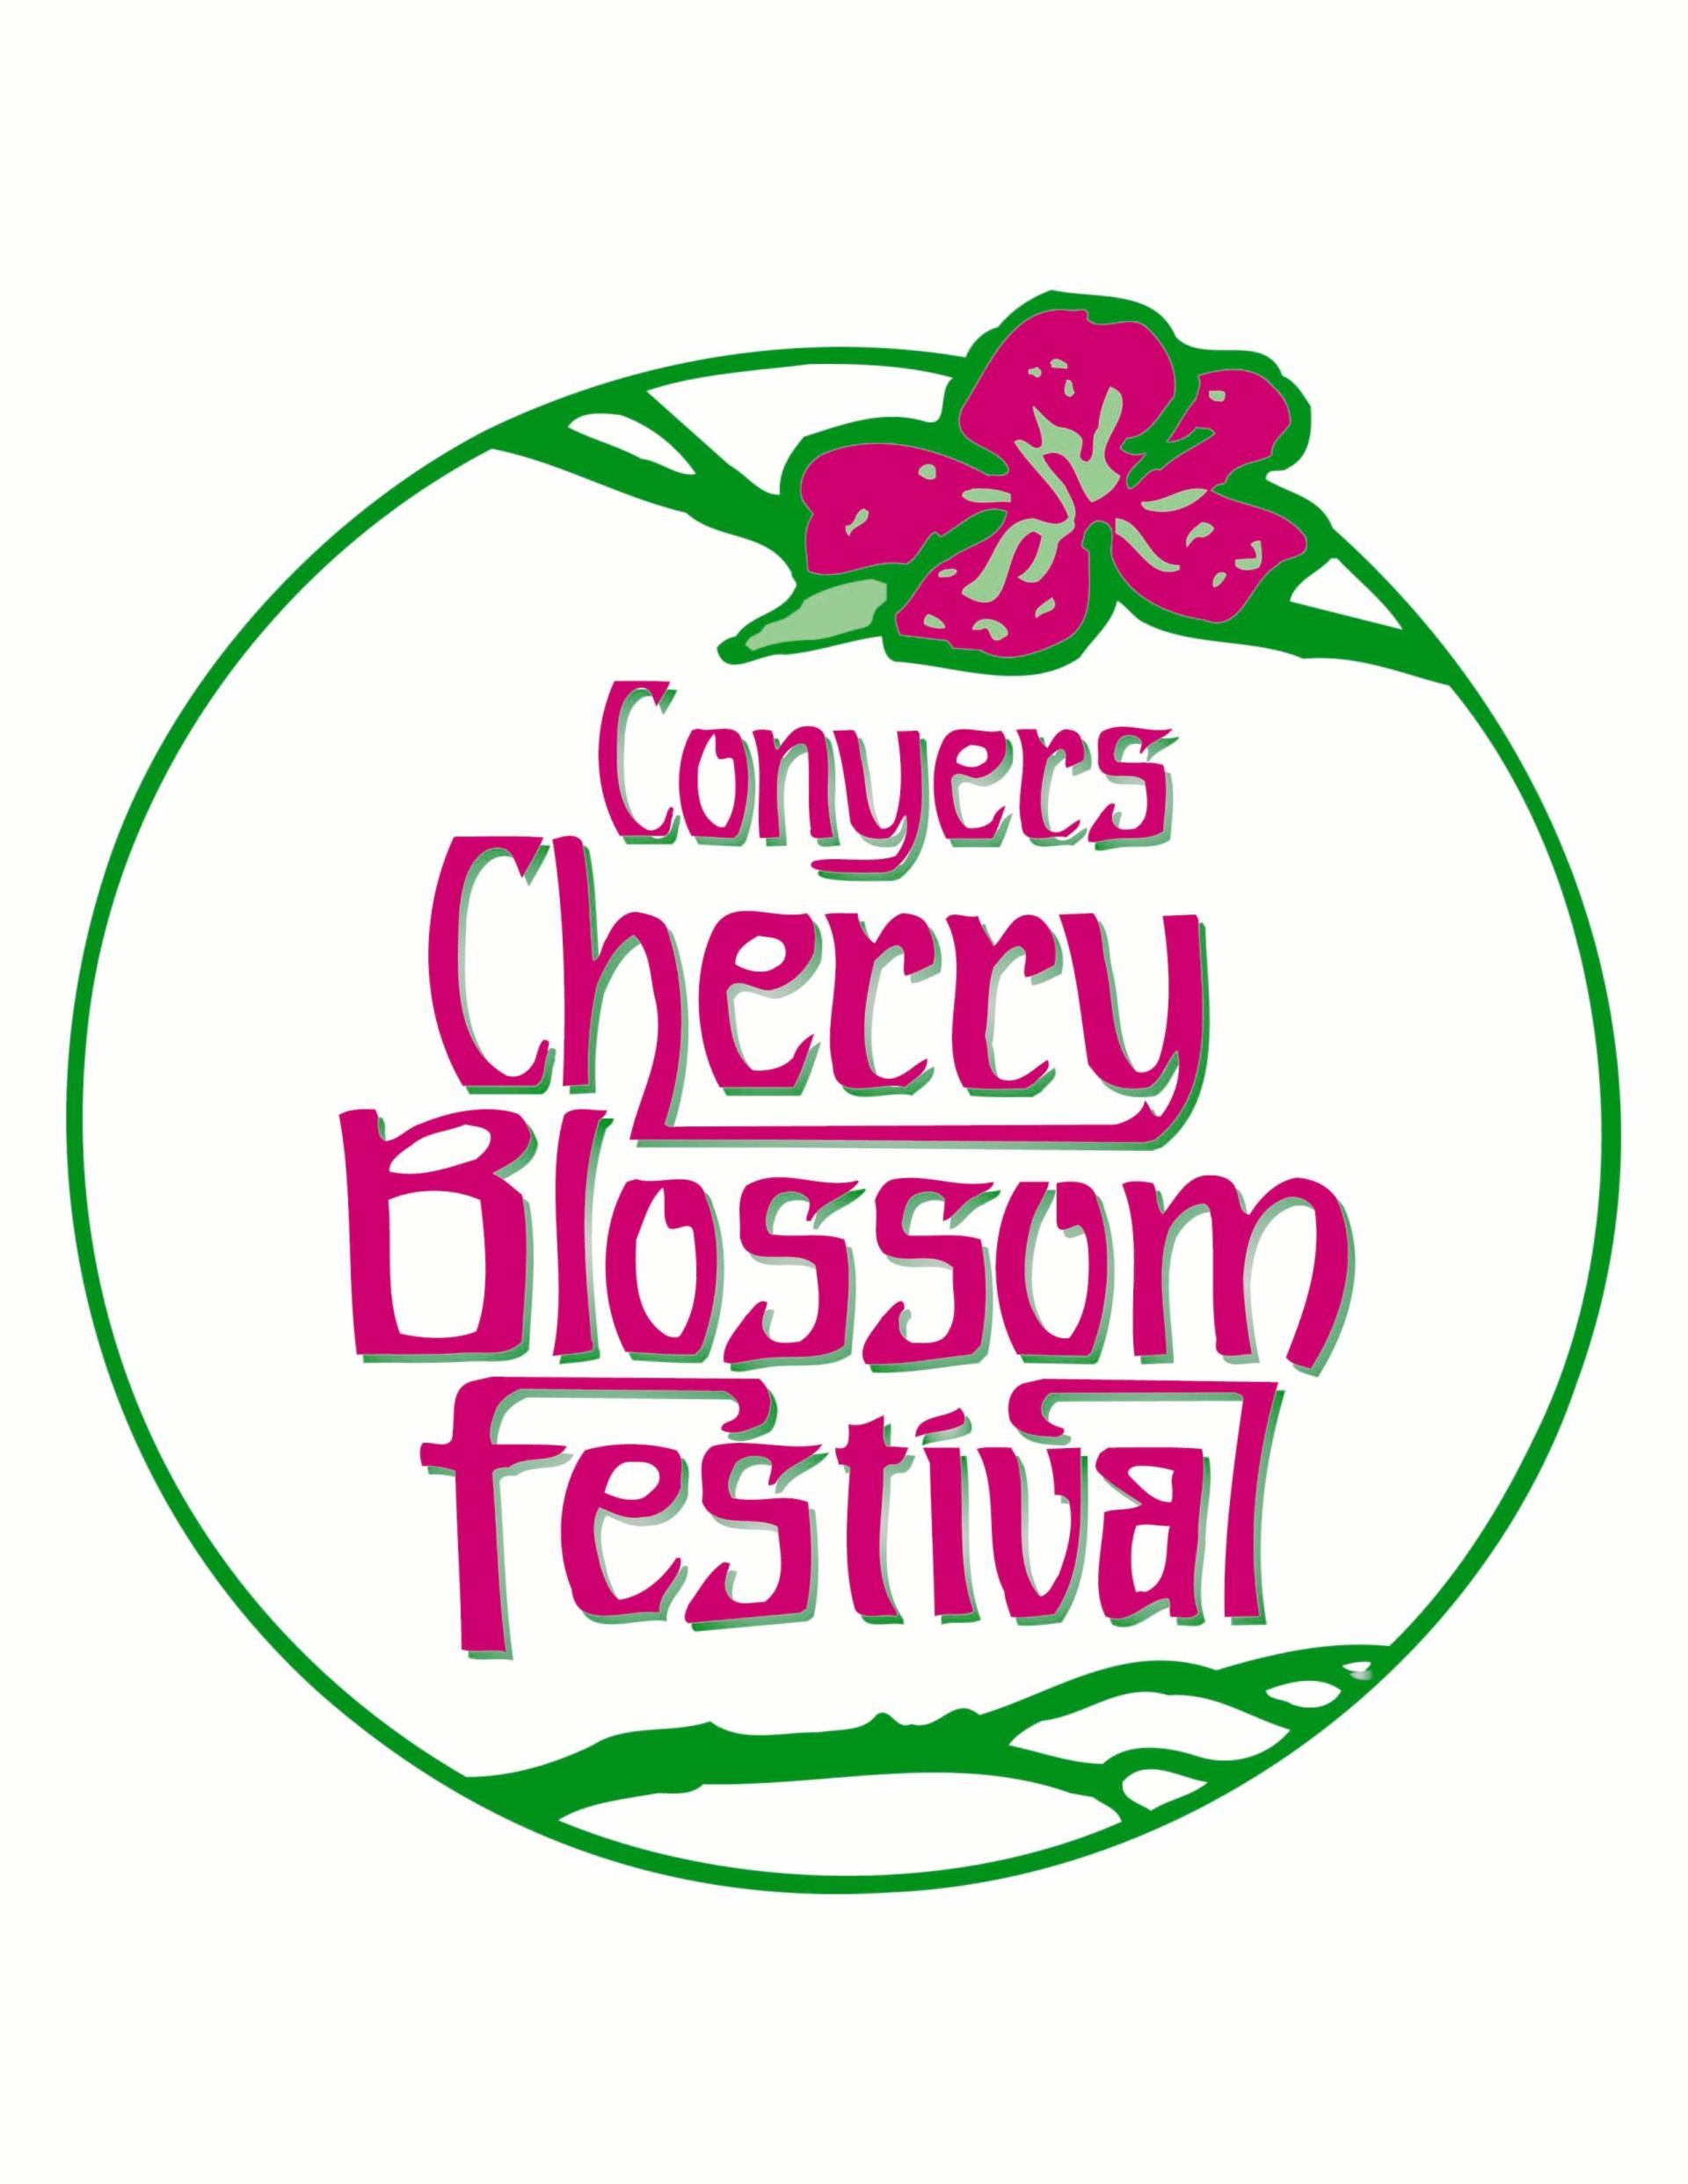 38th Annual Conyers Cherry Blossom Festival